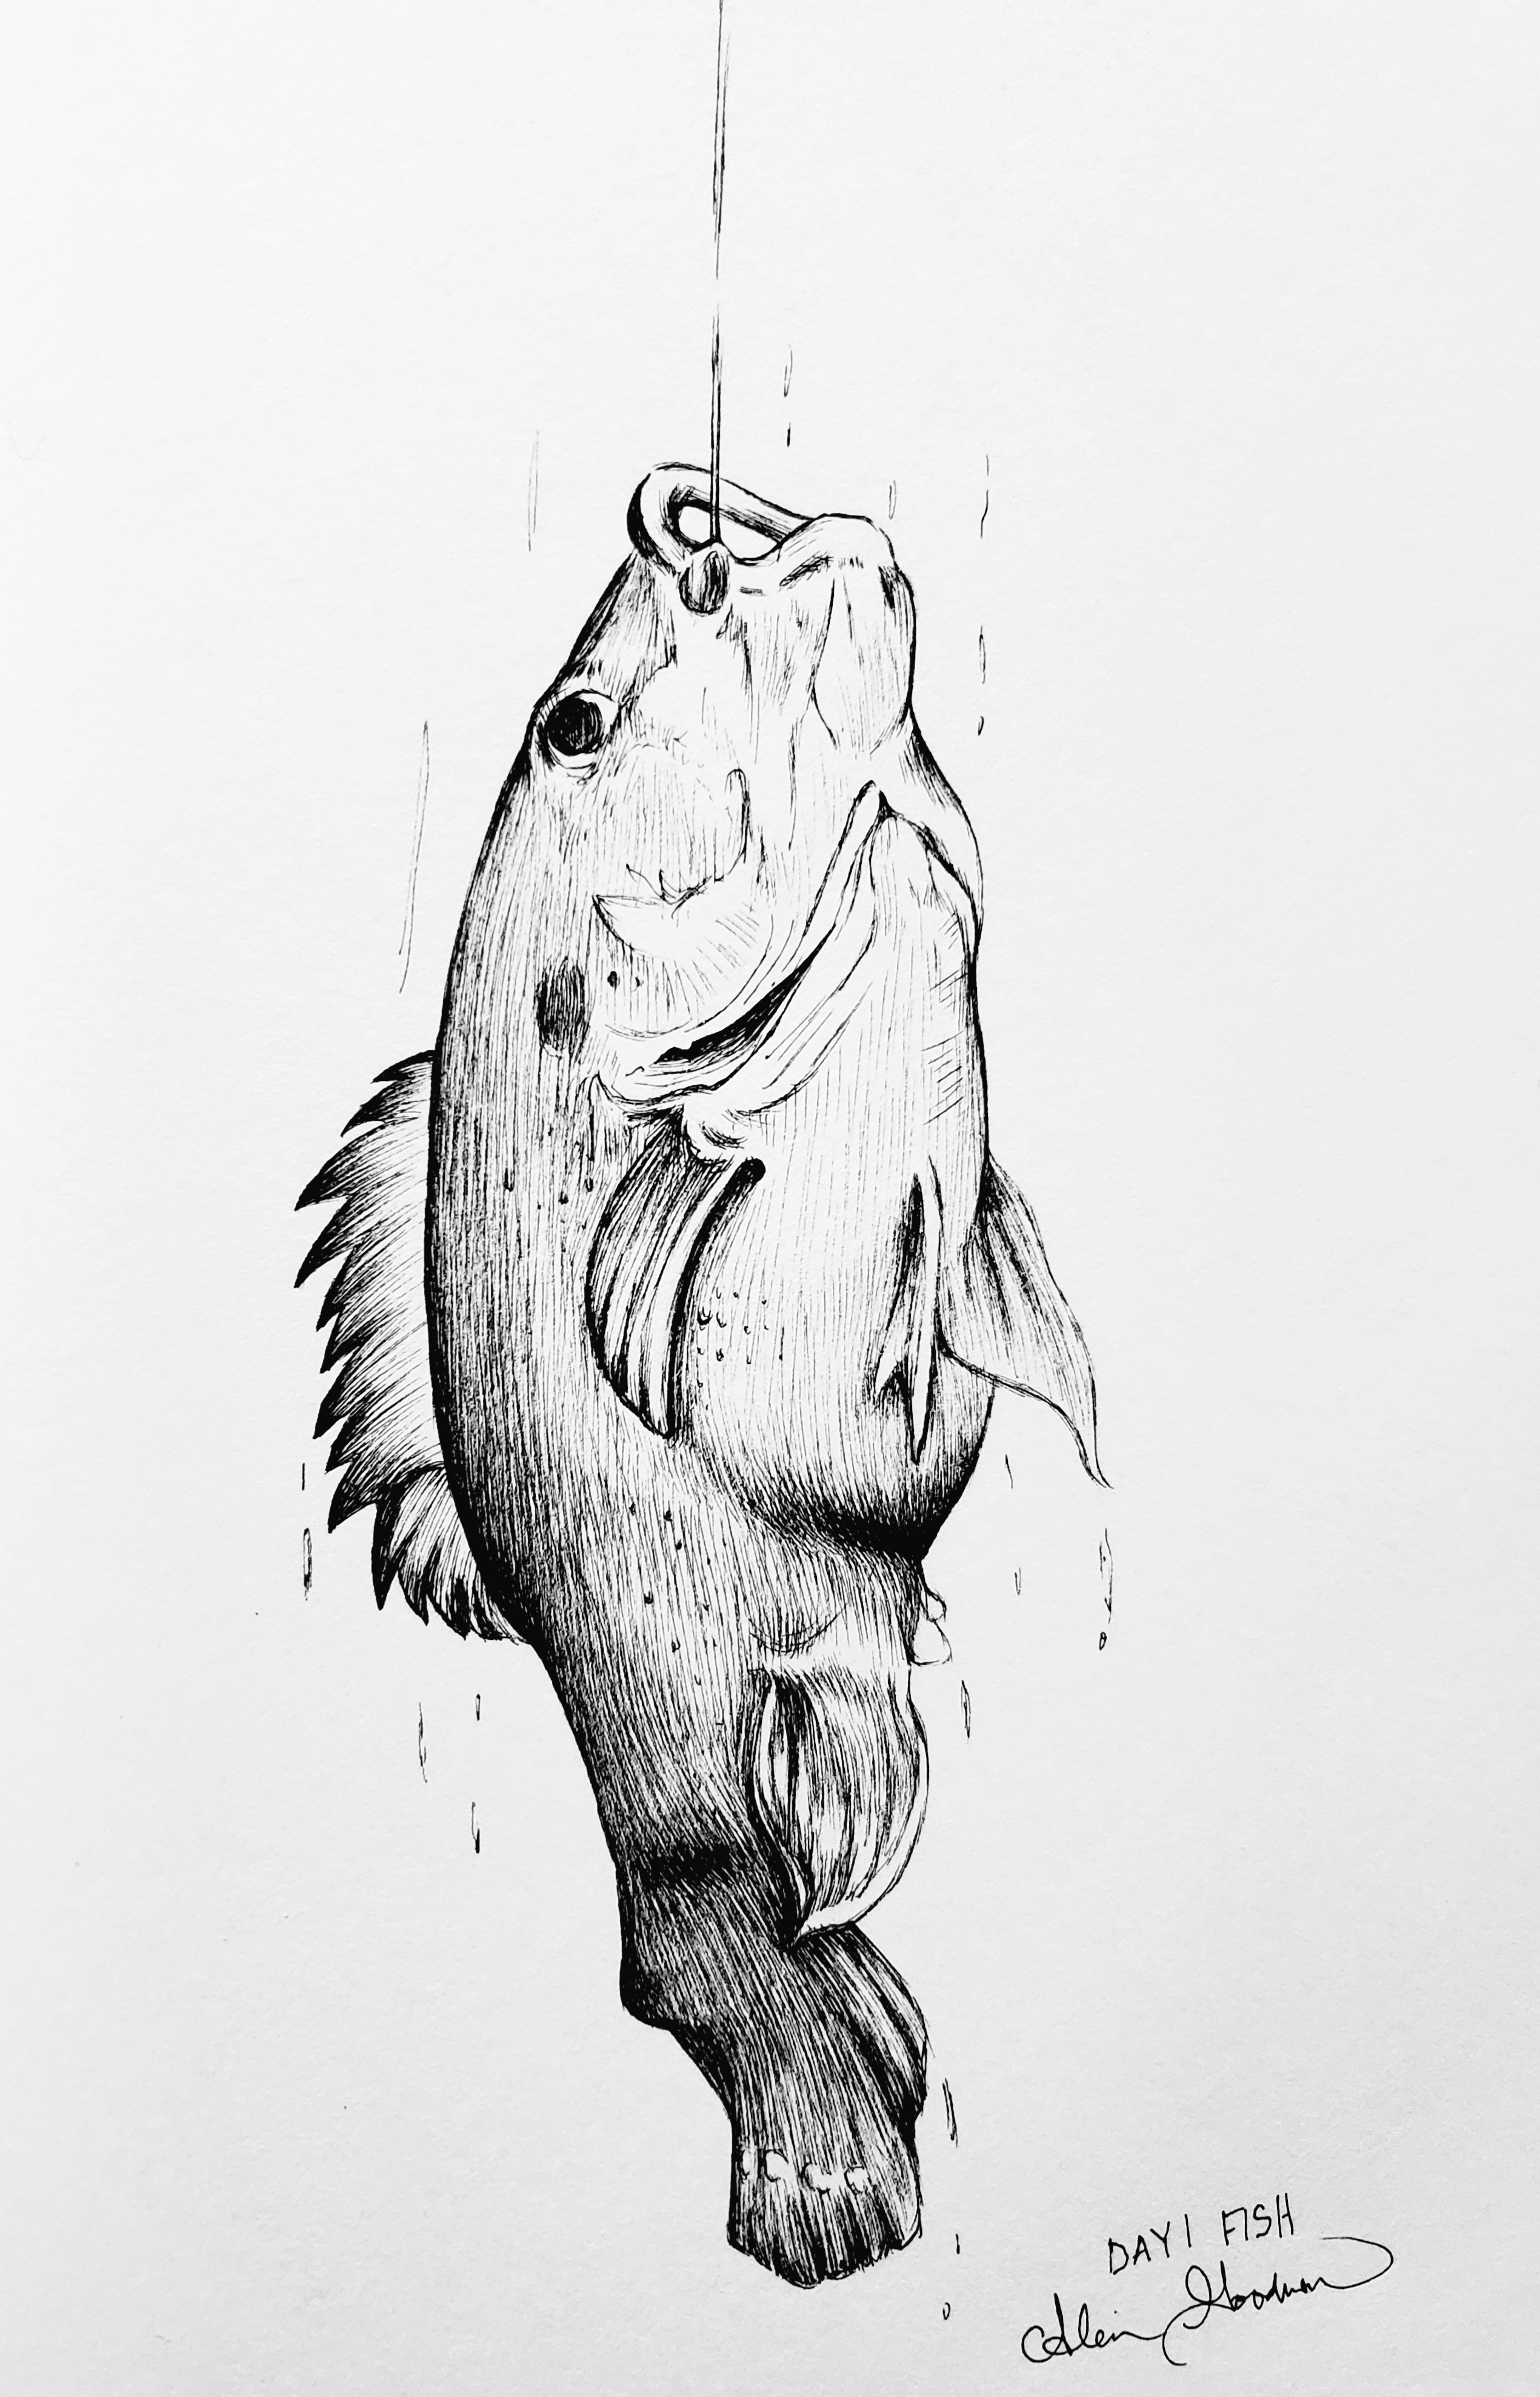 Fish Ink drawing by Alecia Goodman 2020 to present